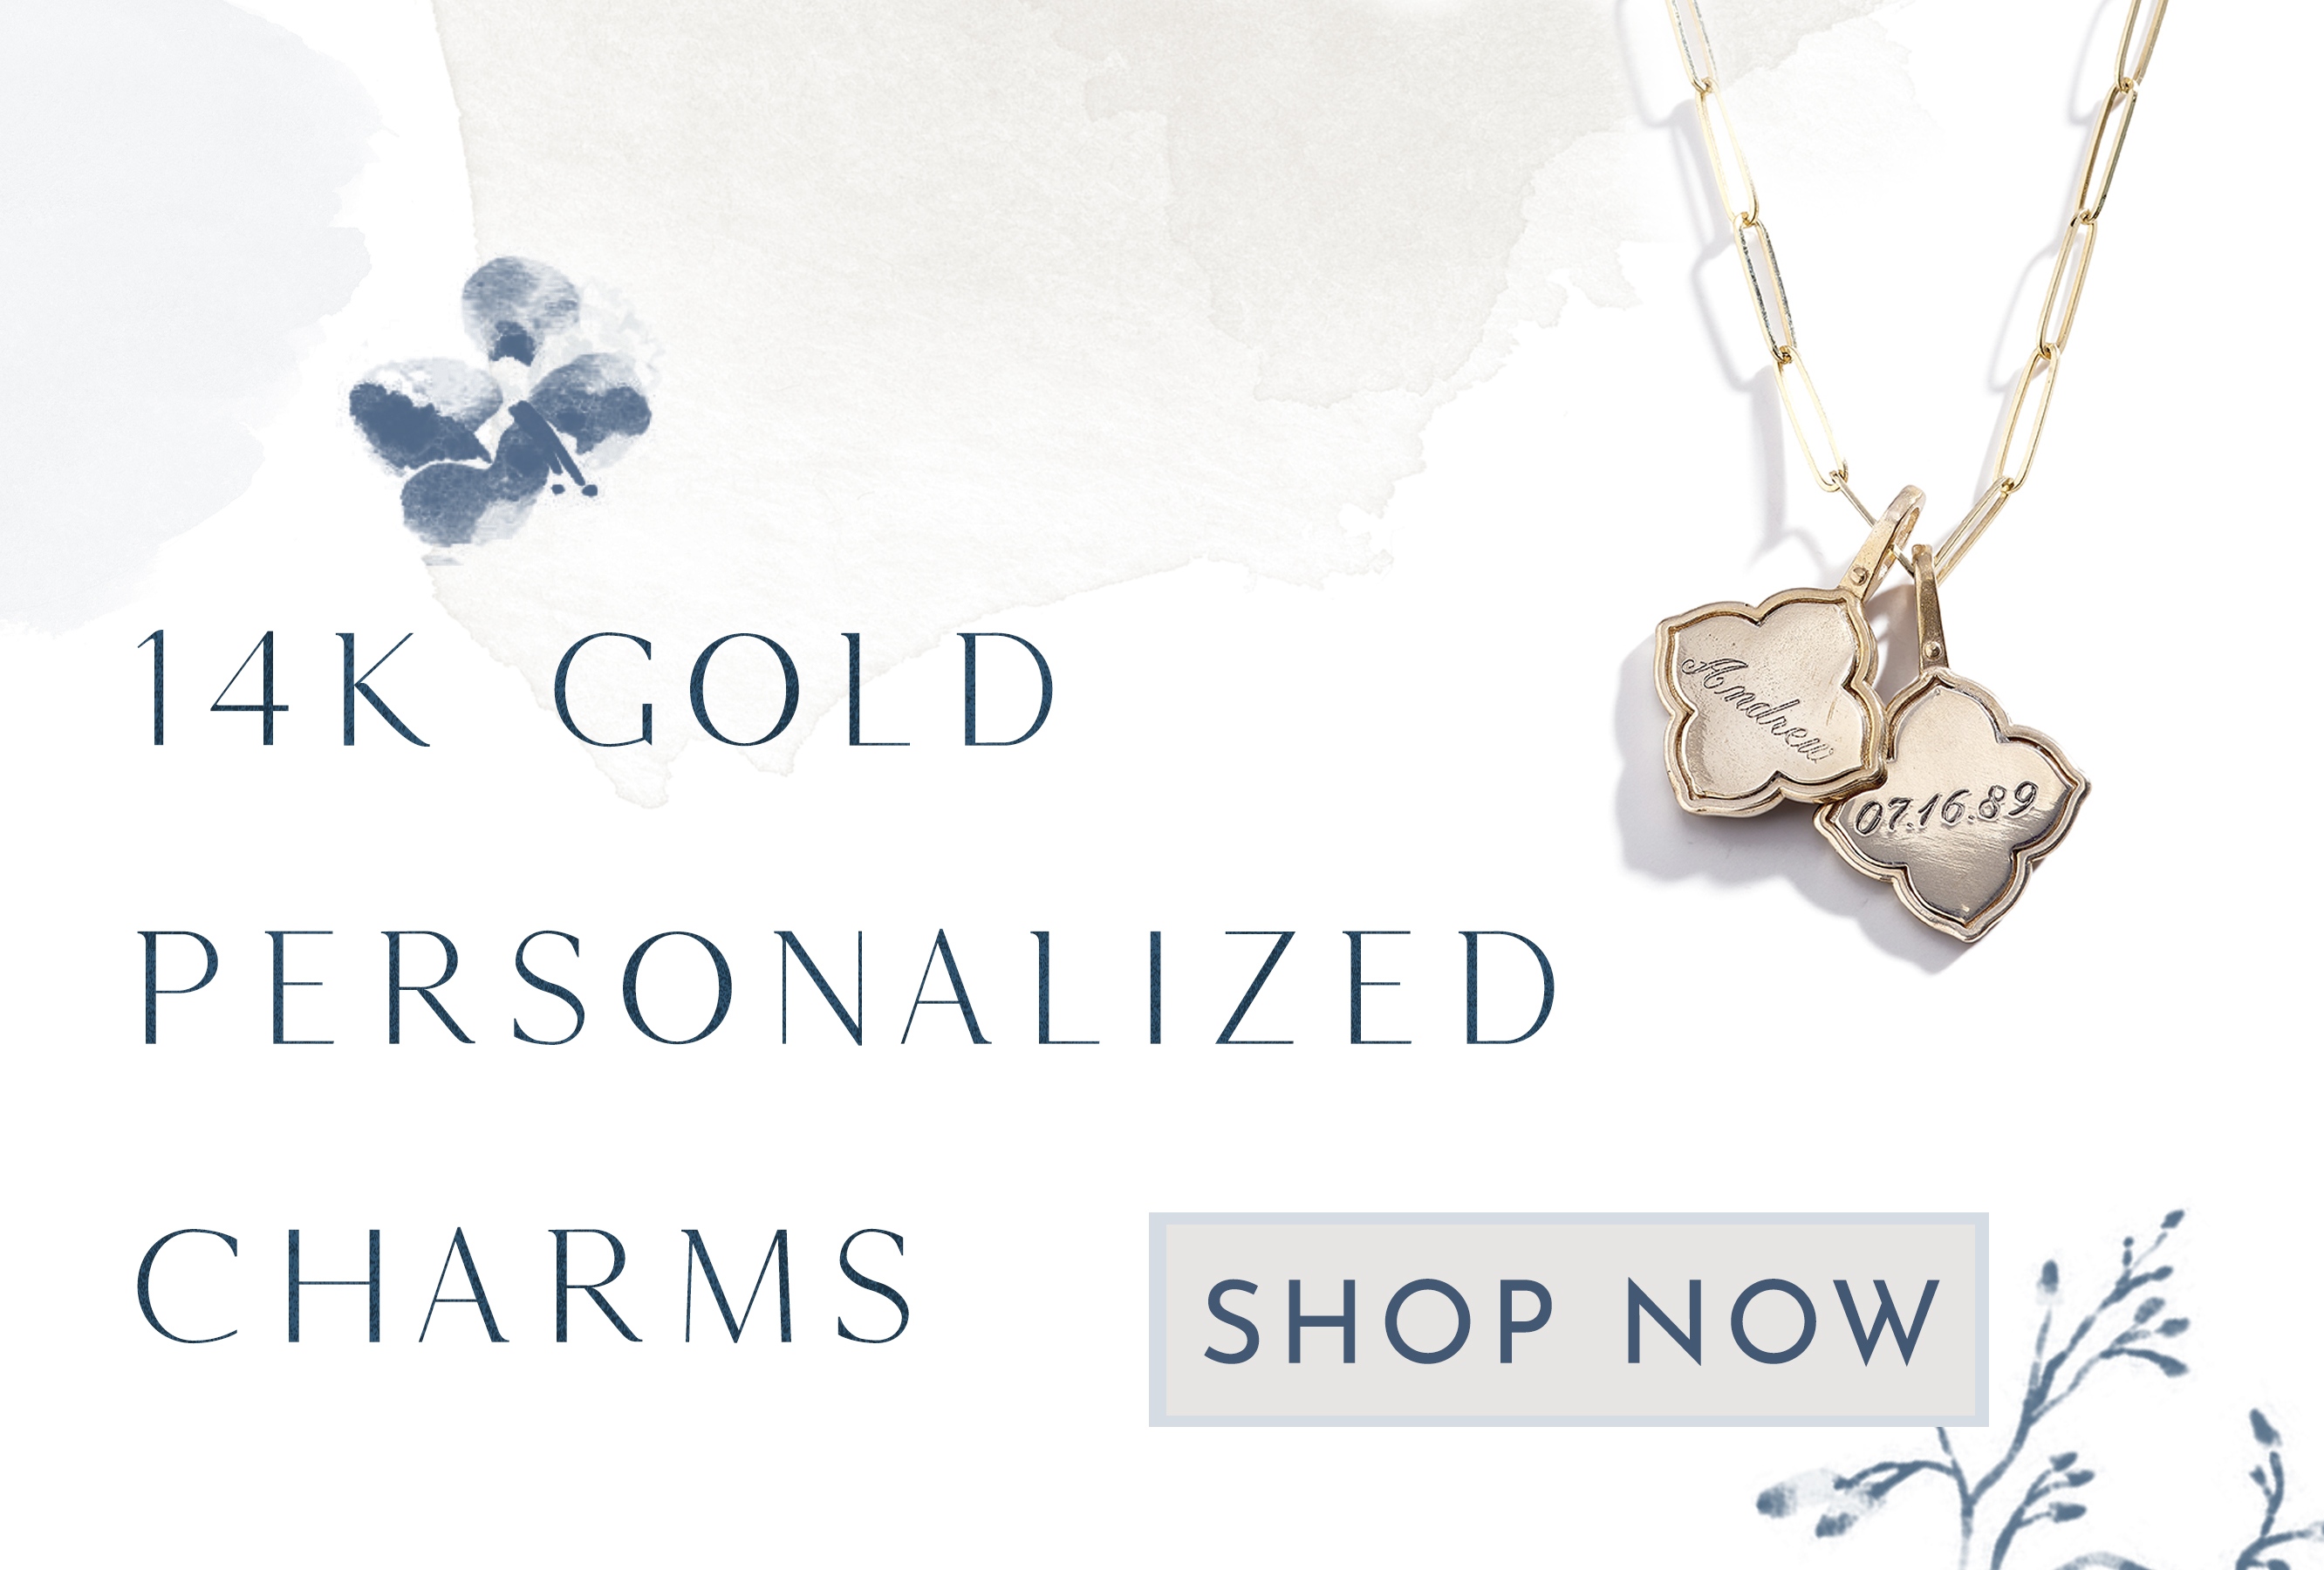 Gold Personalized Charms